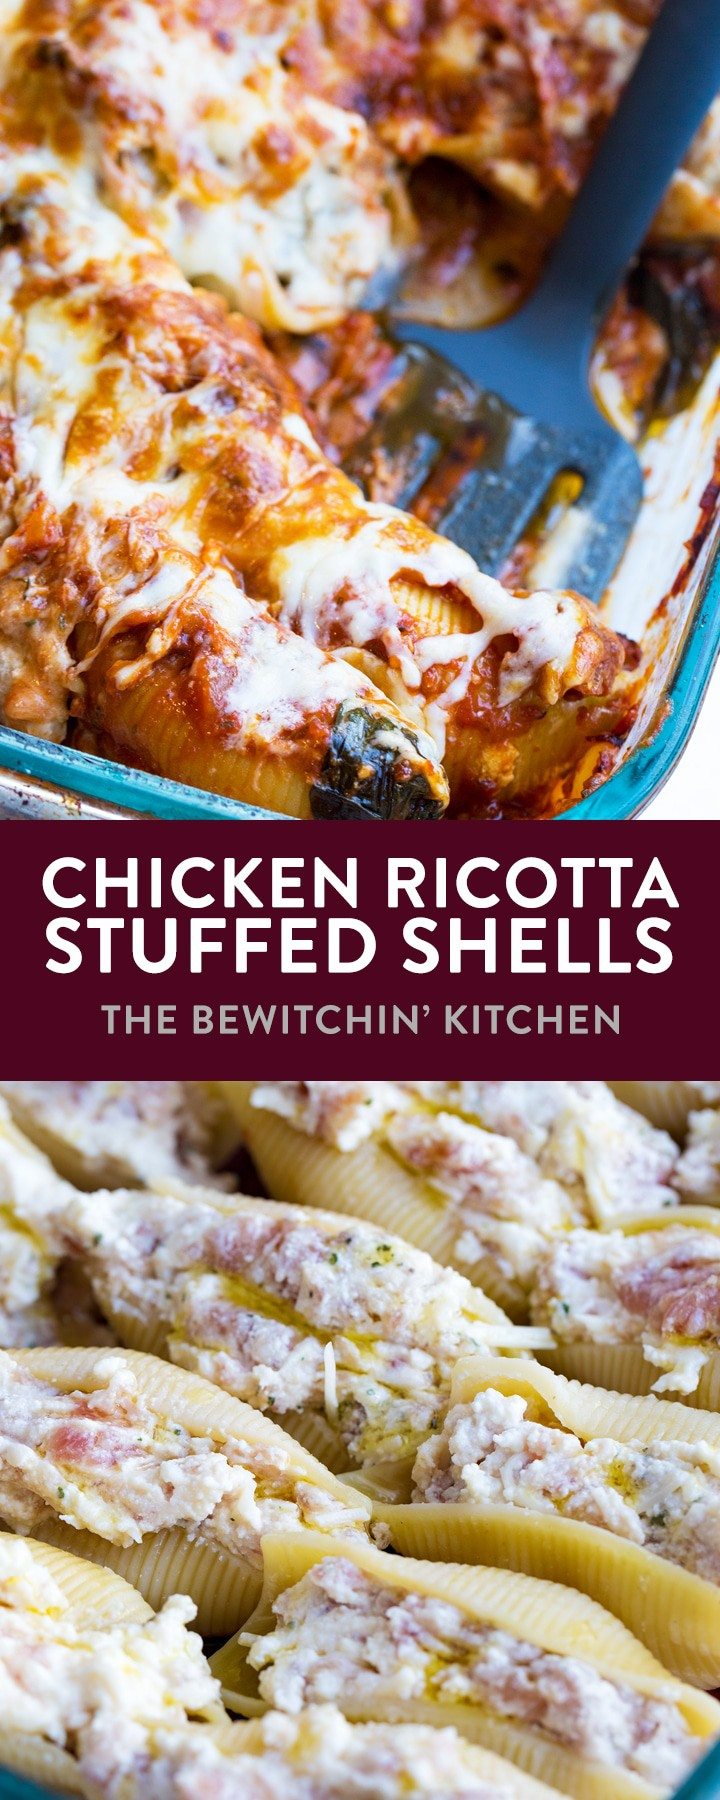 Chicken Ricotta Stuffed Shells - this pasta dinner recipe is amazing! Honey garlic chicken sausage, ricotta cheese, parmesan all stuffed in a jumbo pasta shell. Served with mozzarella cheese and a homemade tomato sauce with spinach. This recipe is the perfect family dish to bring to a potluck or family party. One of my favorite recipes! #thebewitchinkitchen #spinachricottashells #stuffedshells #pastarecipe #comfortfood #potluckrecipes #chickenstuffedshells #chickenricottastuffedshells #ricottastuffedshells